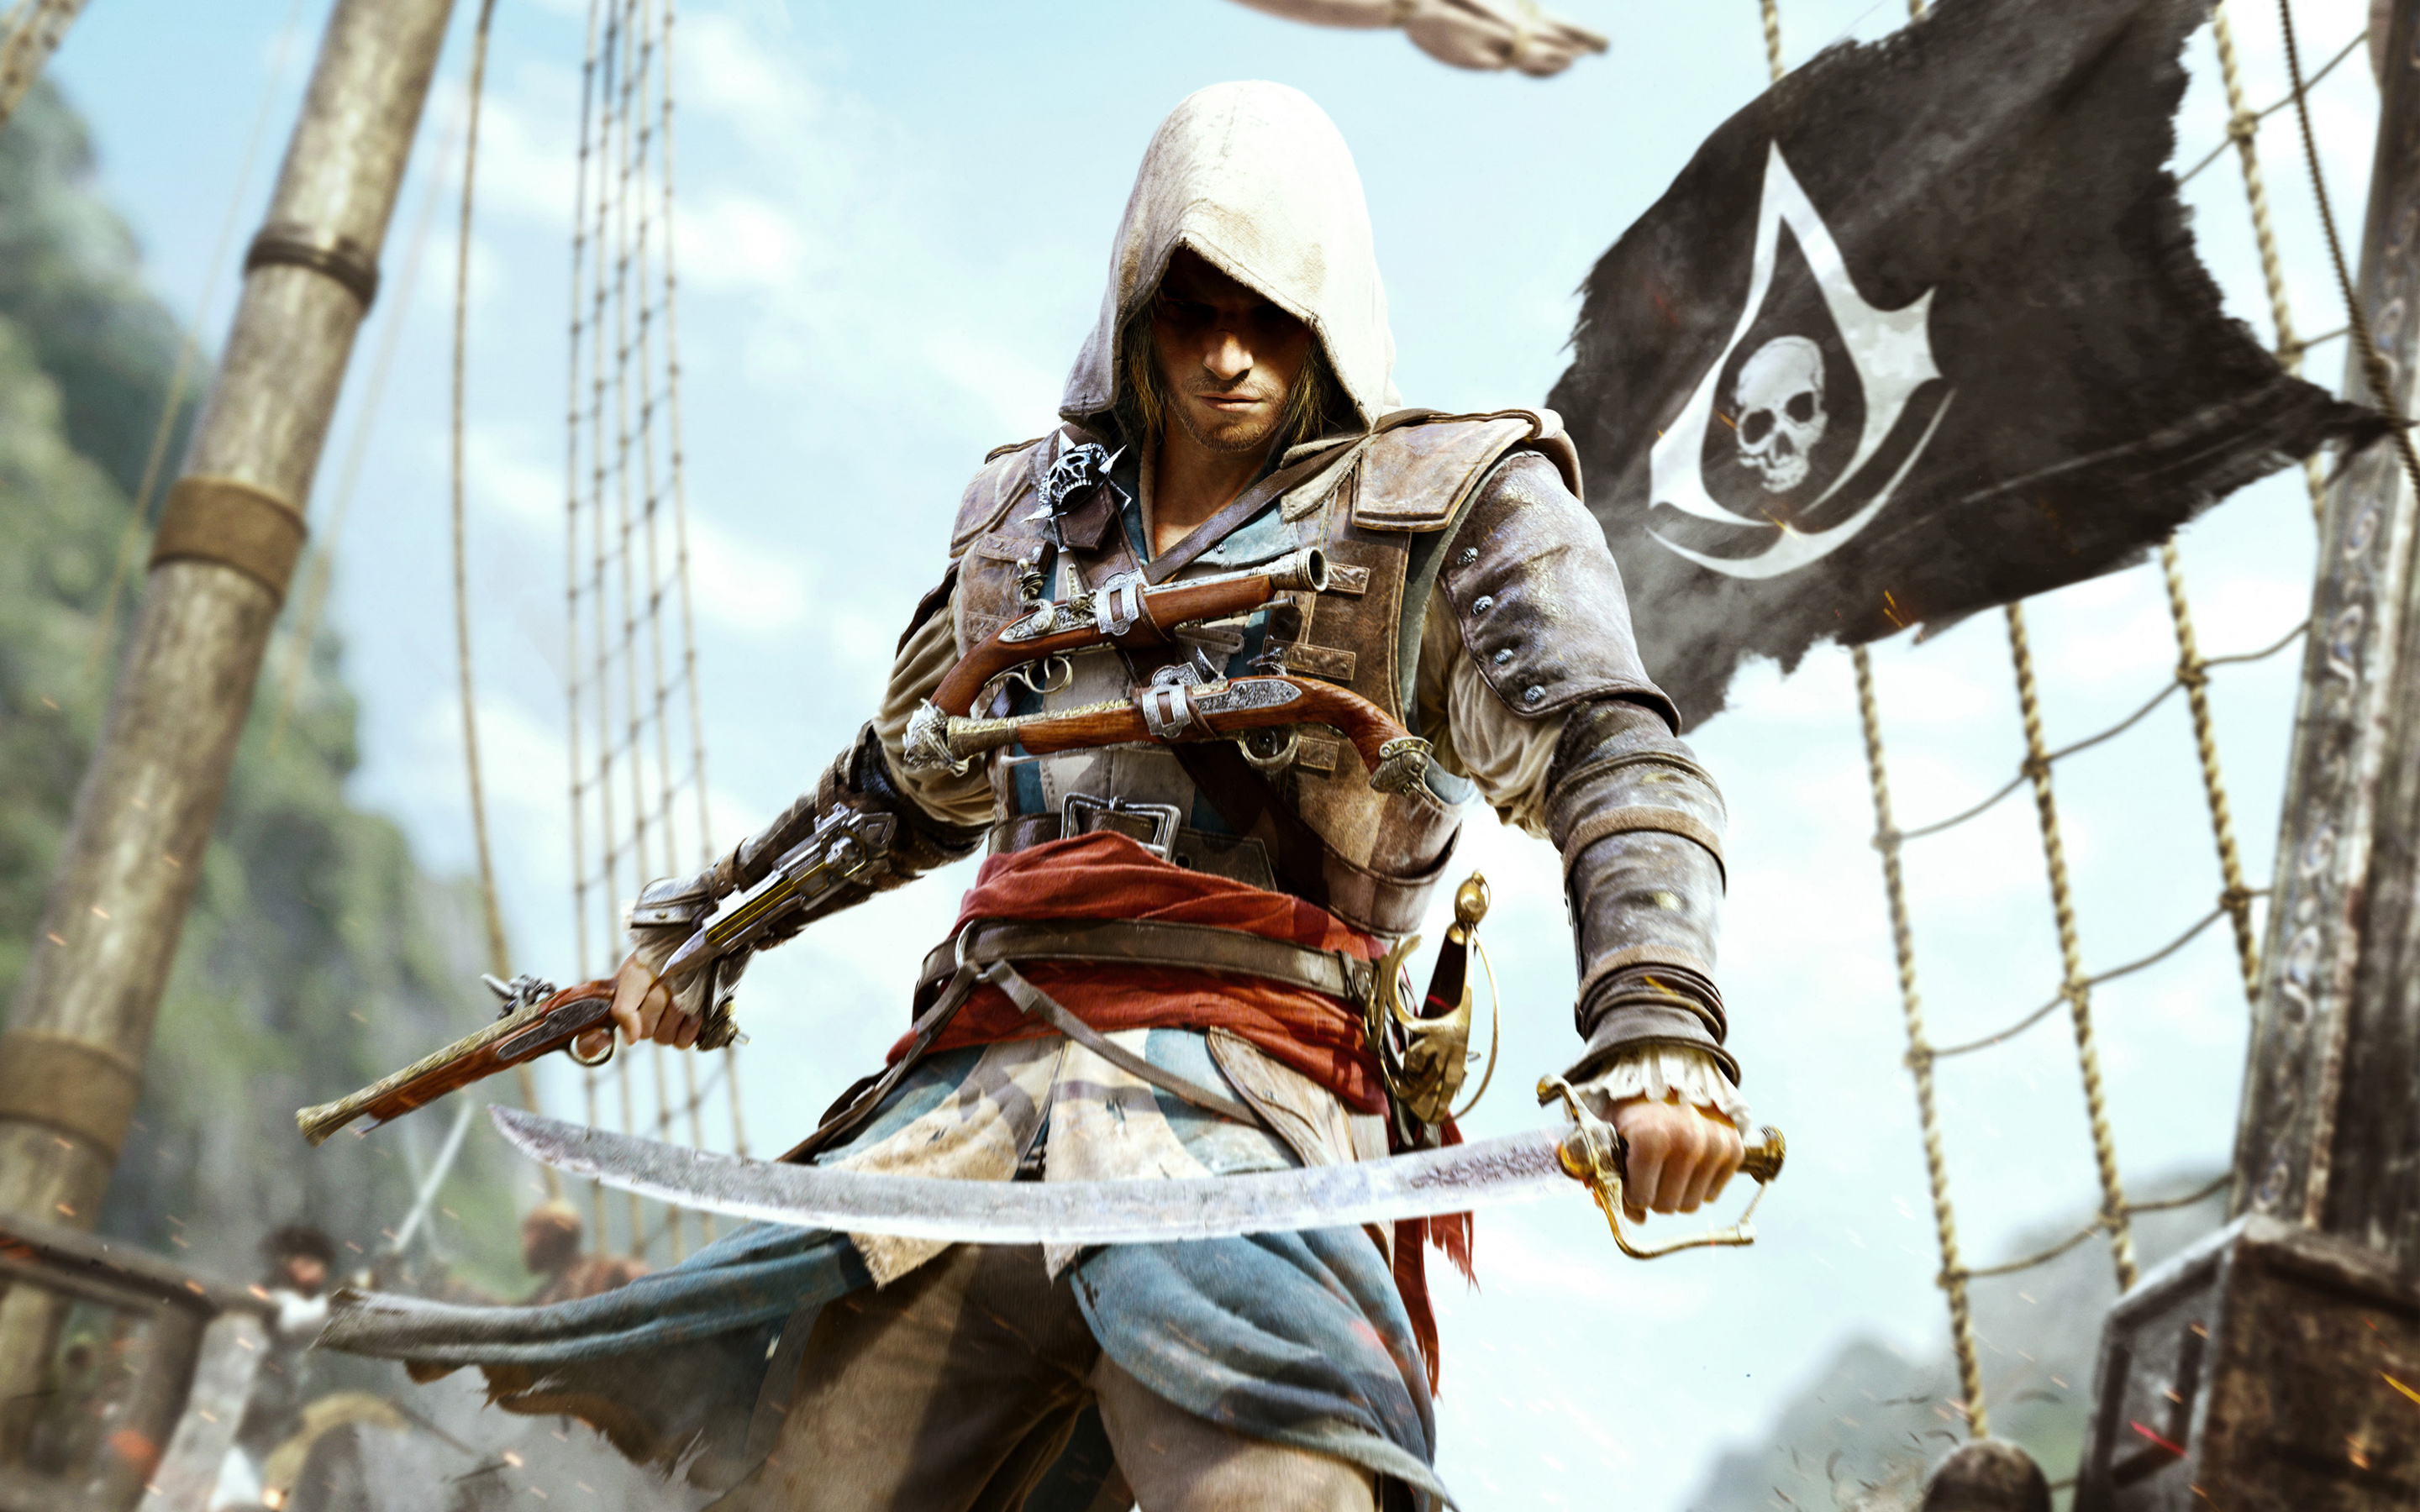 http://criticalhits.com.br/wp-content/uploads/2013/09/assassins_creed_4_black_flag_game-wide.jpg